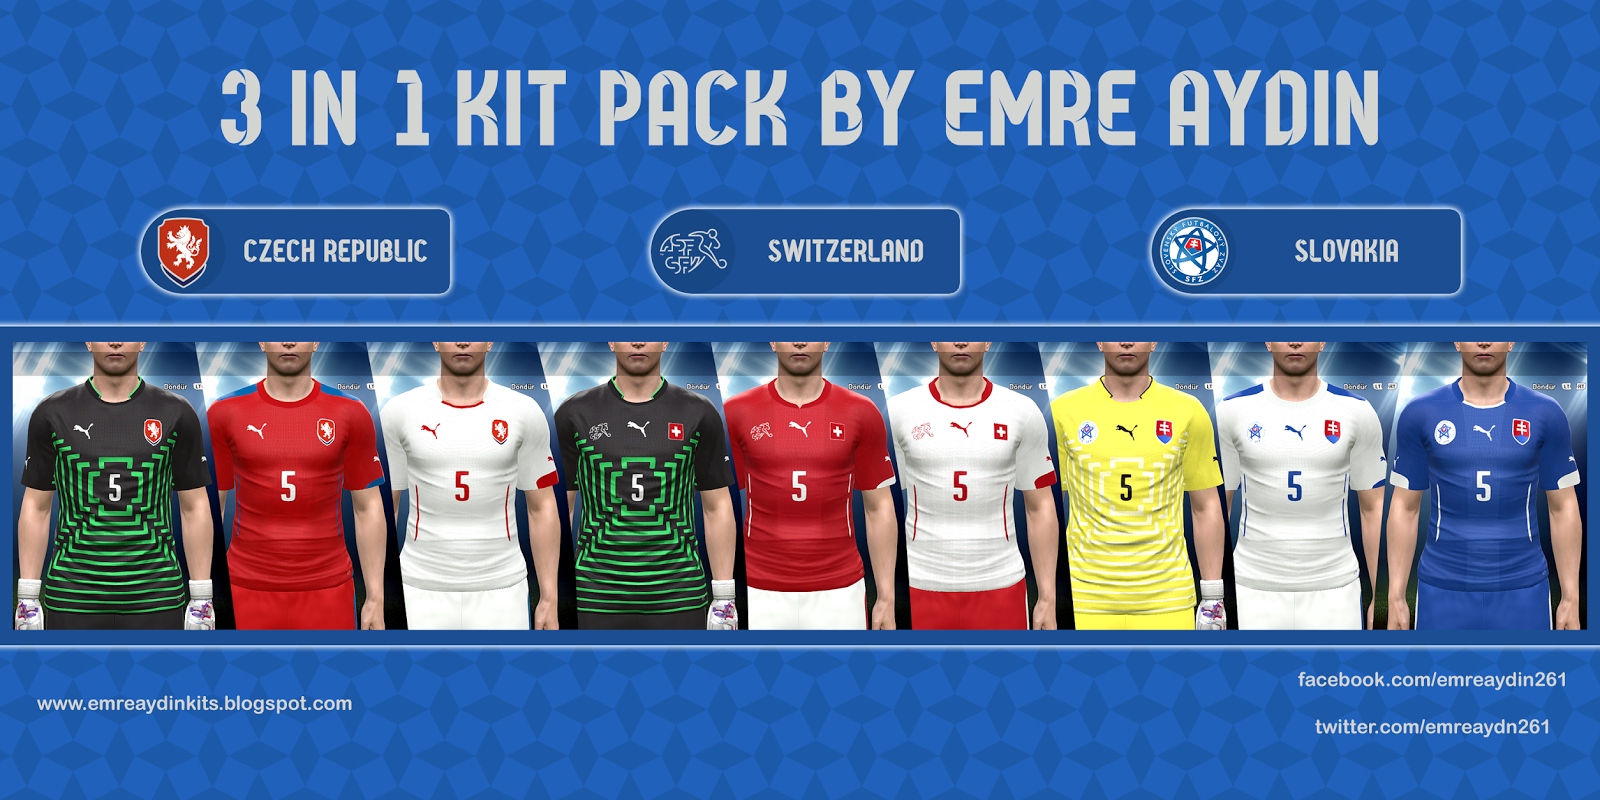 PES 2015 3 In 1 Kit Pack by Emre Aydin